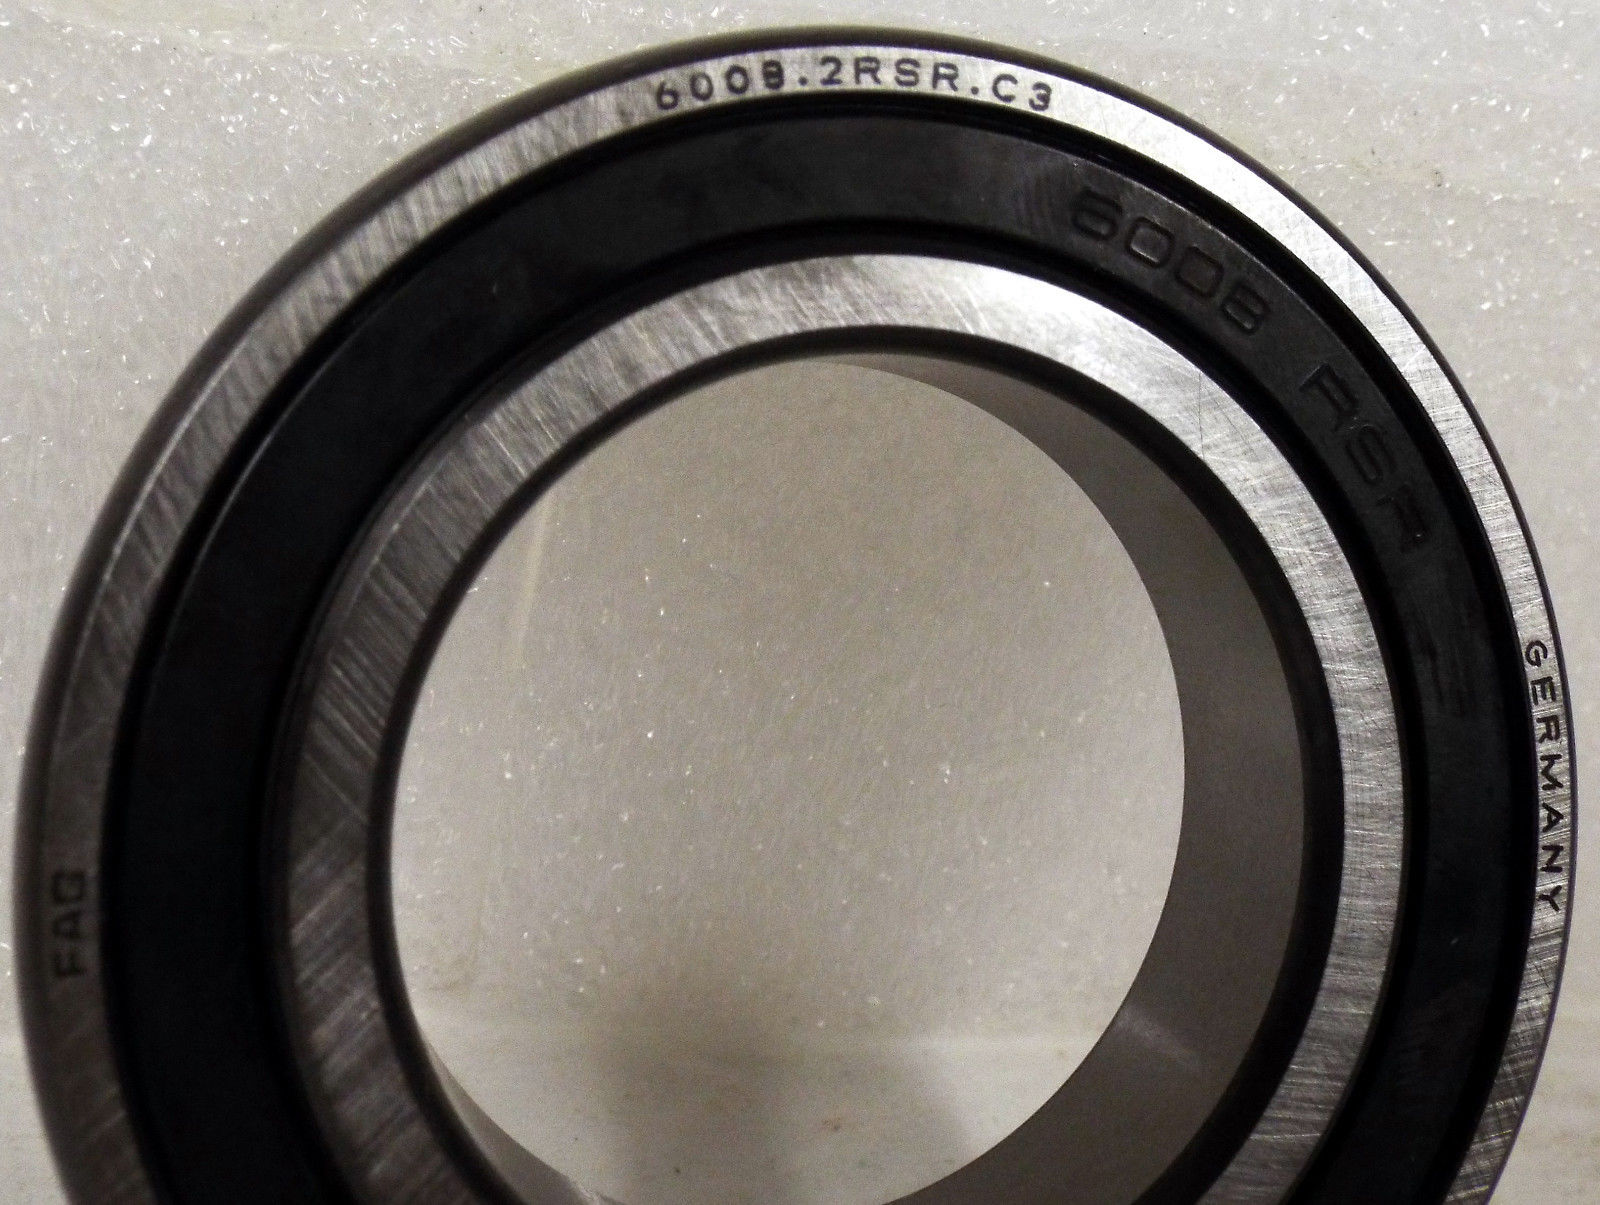 high temperature 1  FAG 6008.2RSR.C3 RADIAL BALL BEARING DOUBLE SEALED